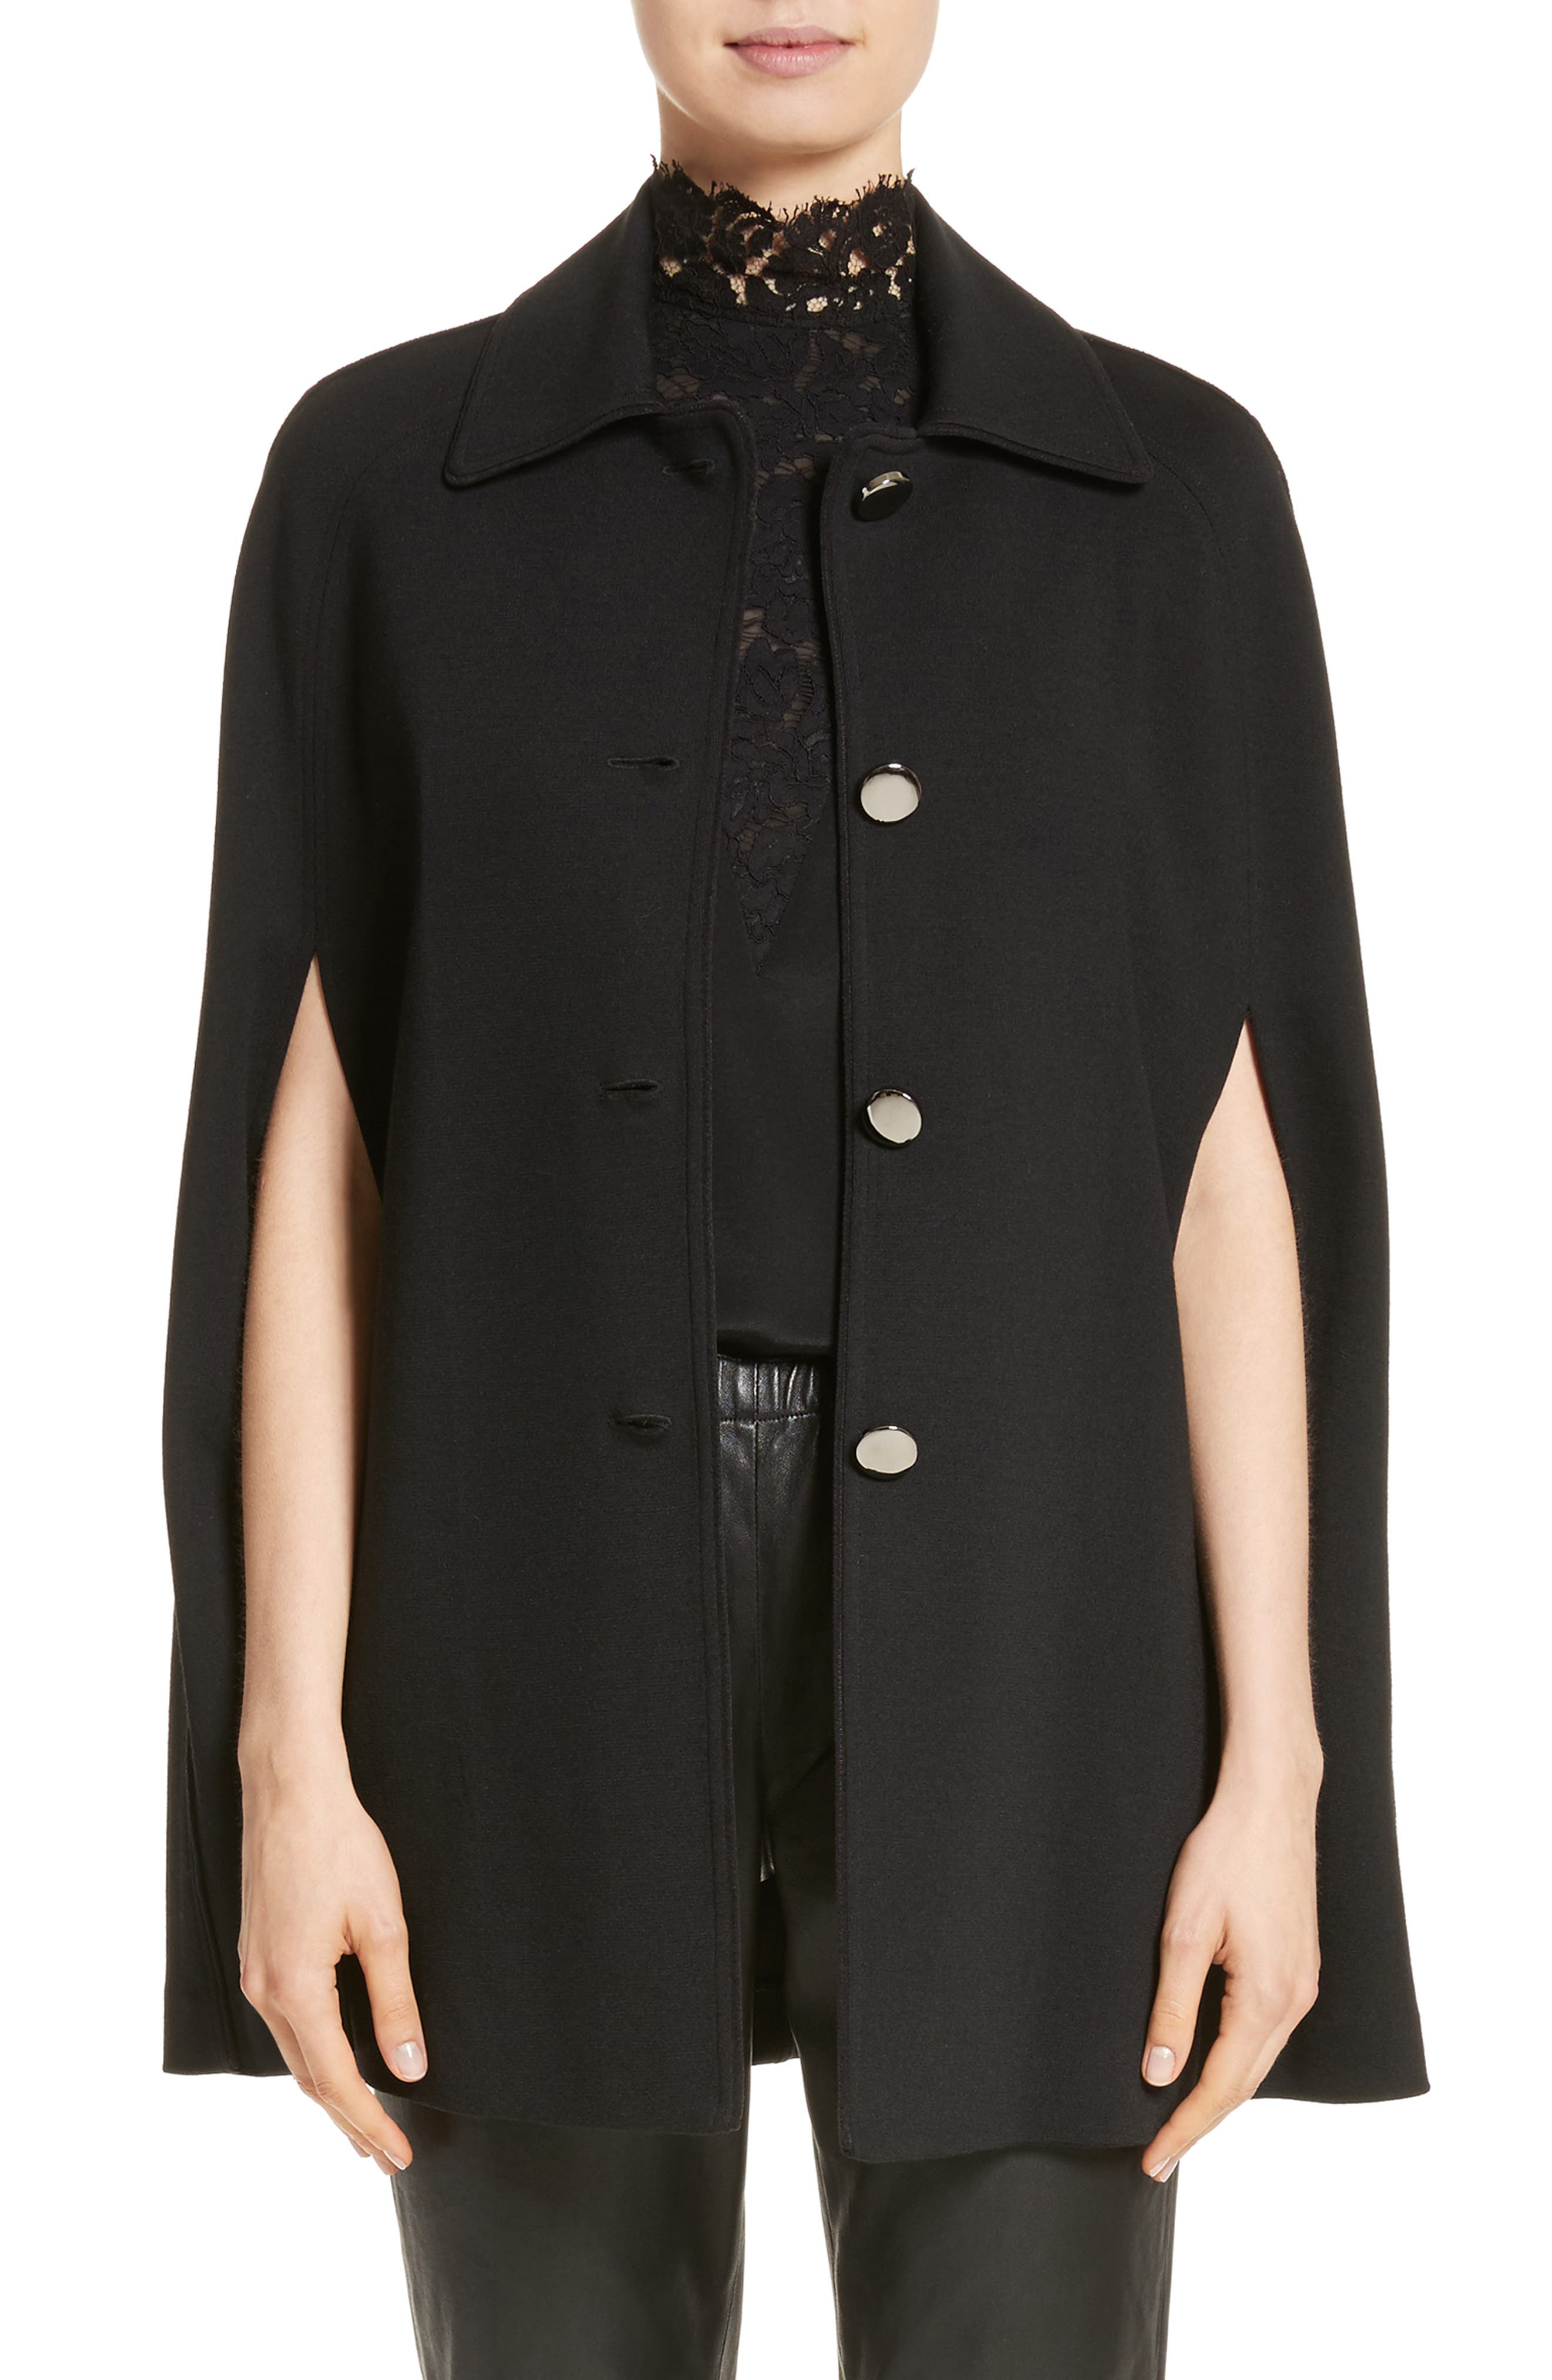 ST. JOHN COLLECTION Milano Knit Collared Cape, Main, color, 001